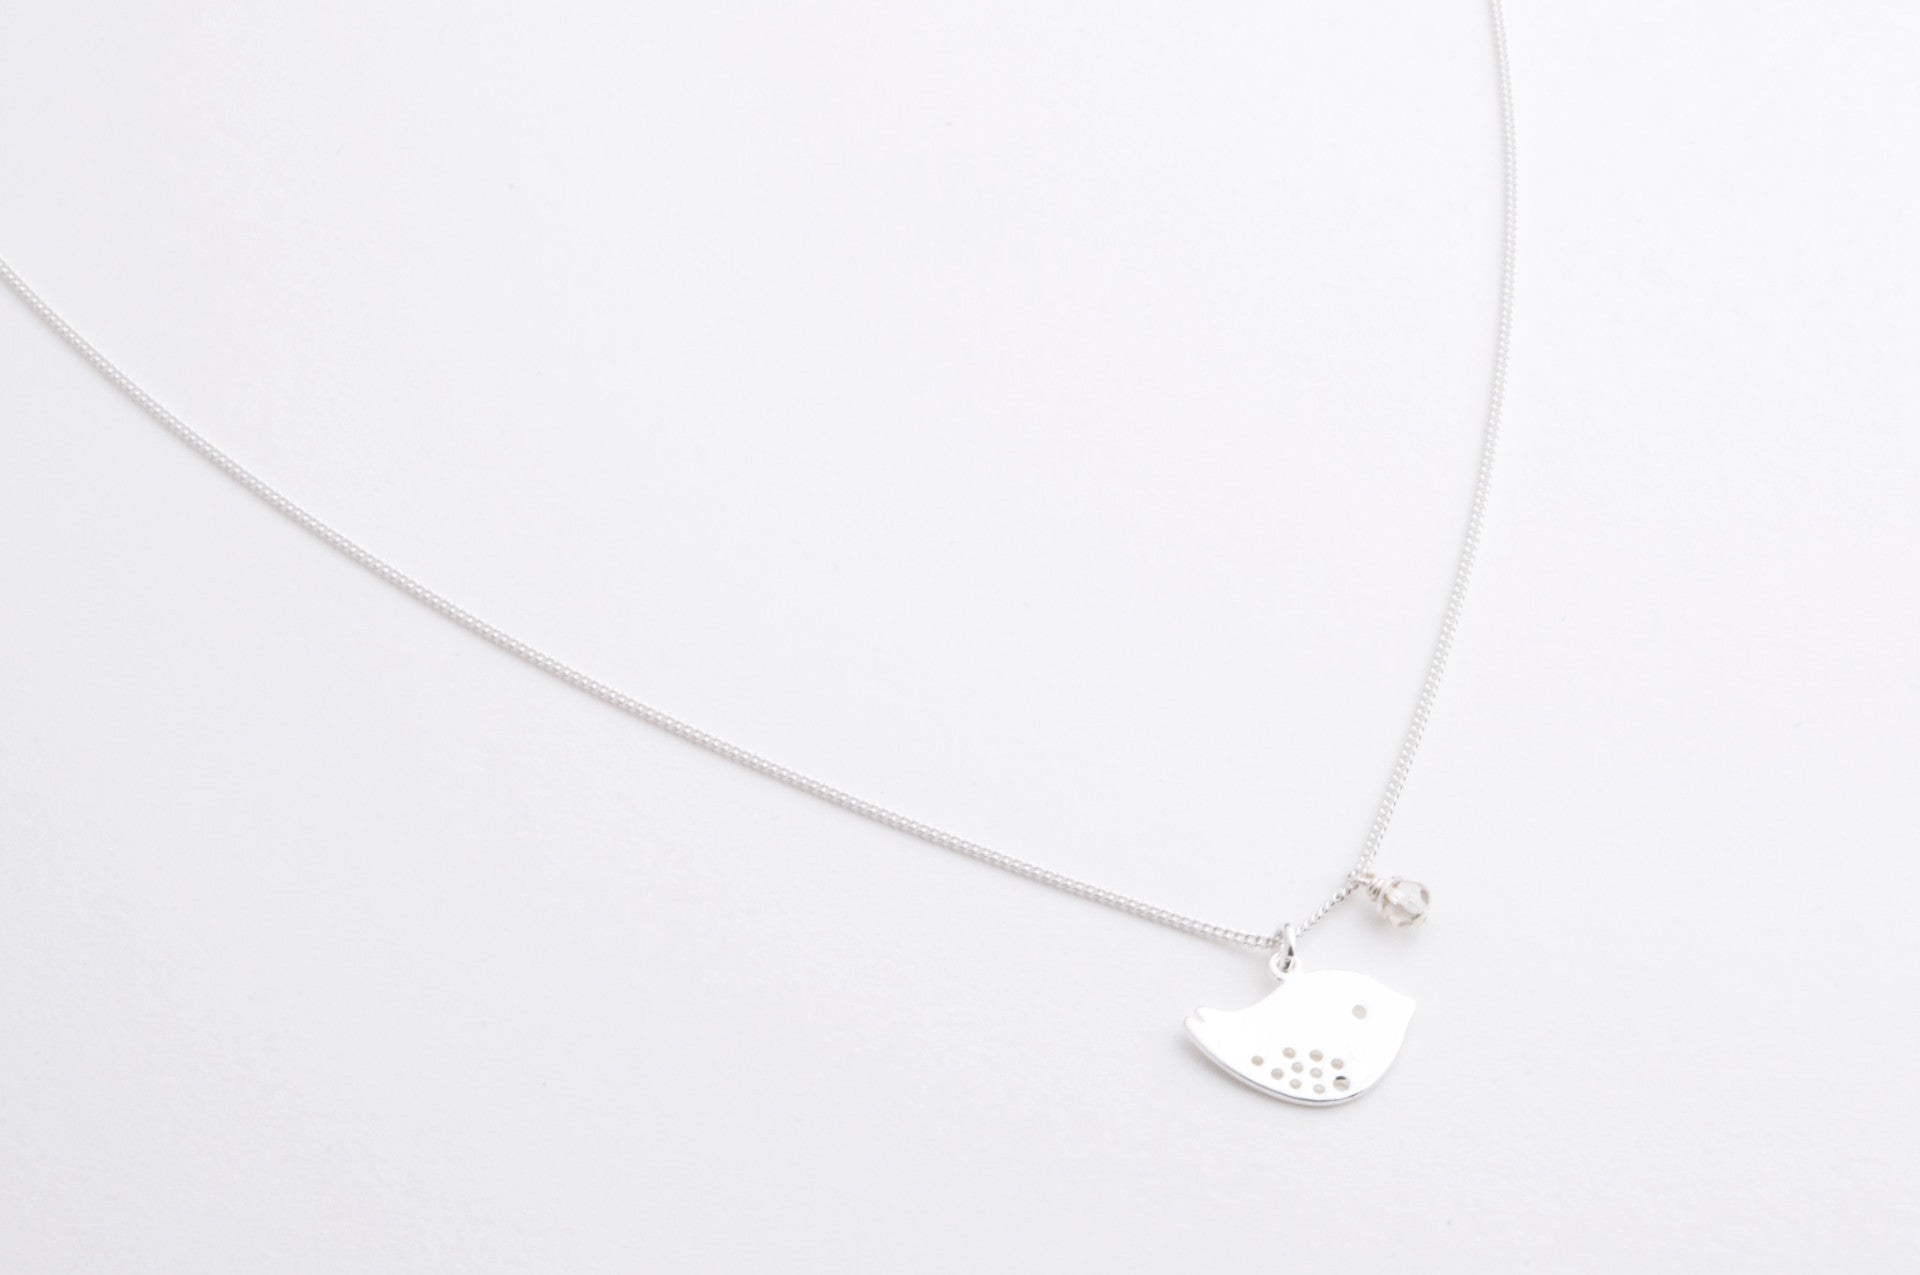 ....Kette SPARROW versilbert..Necklace SPARROW silver plated....